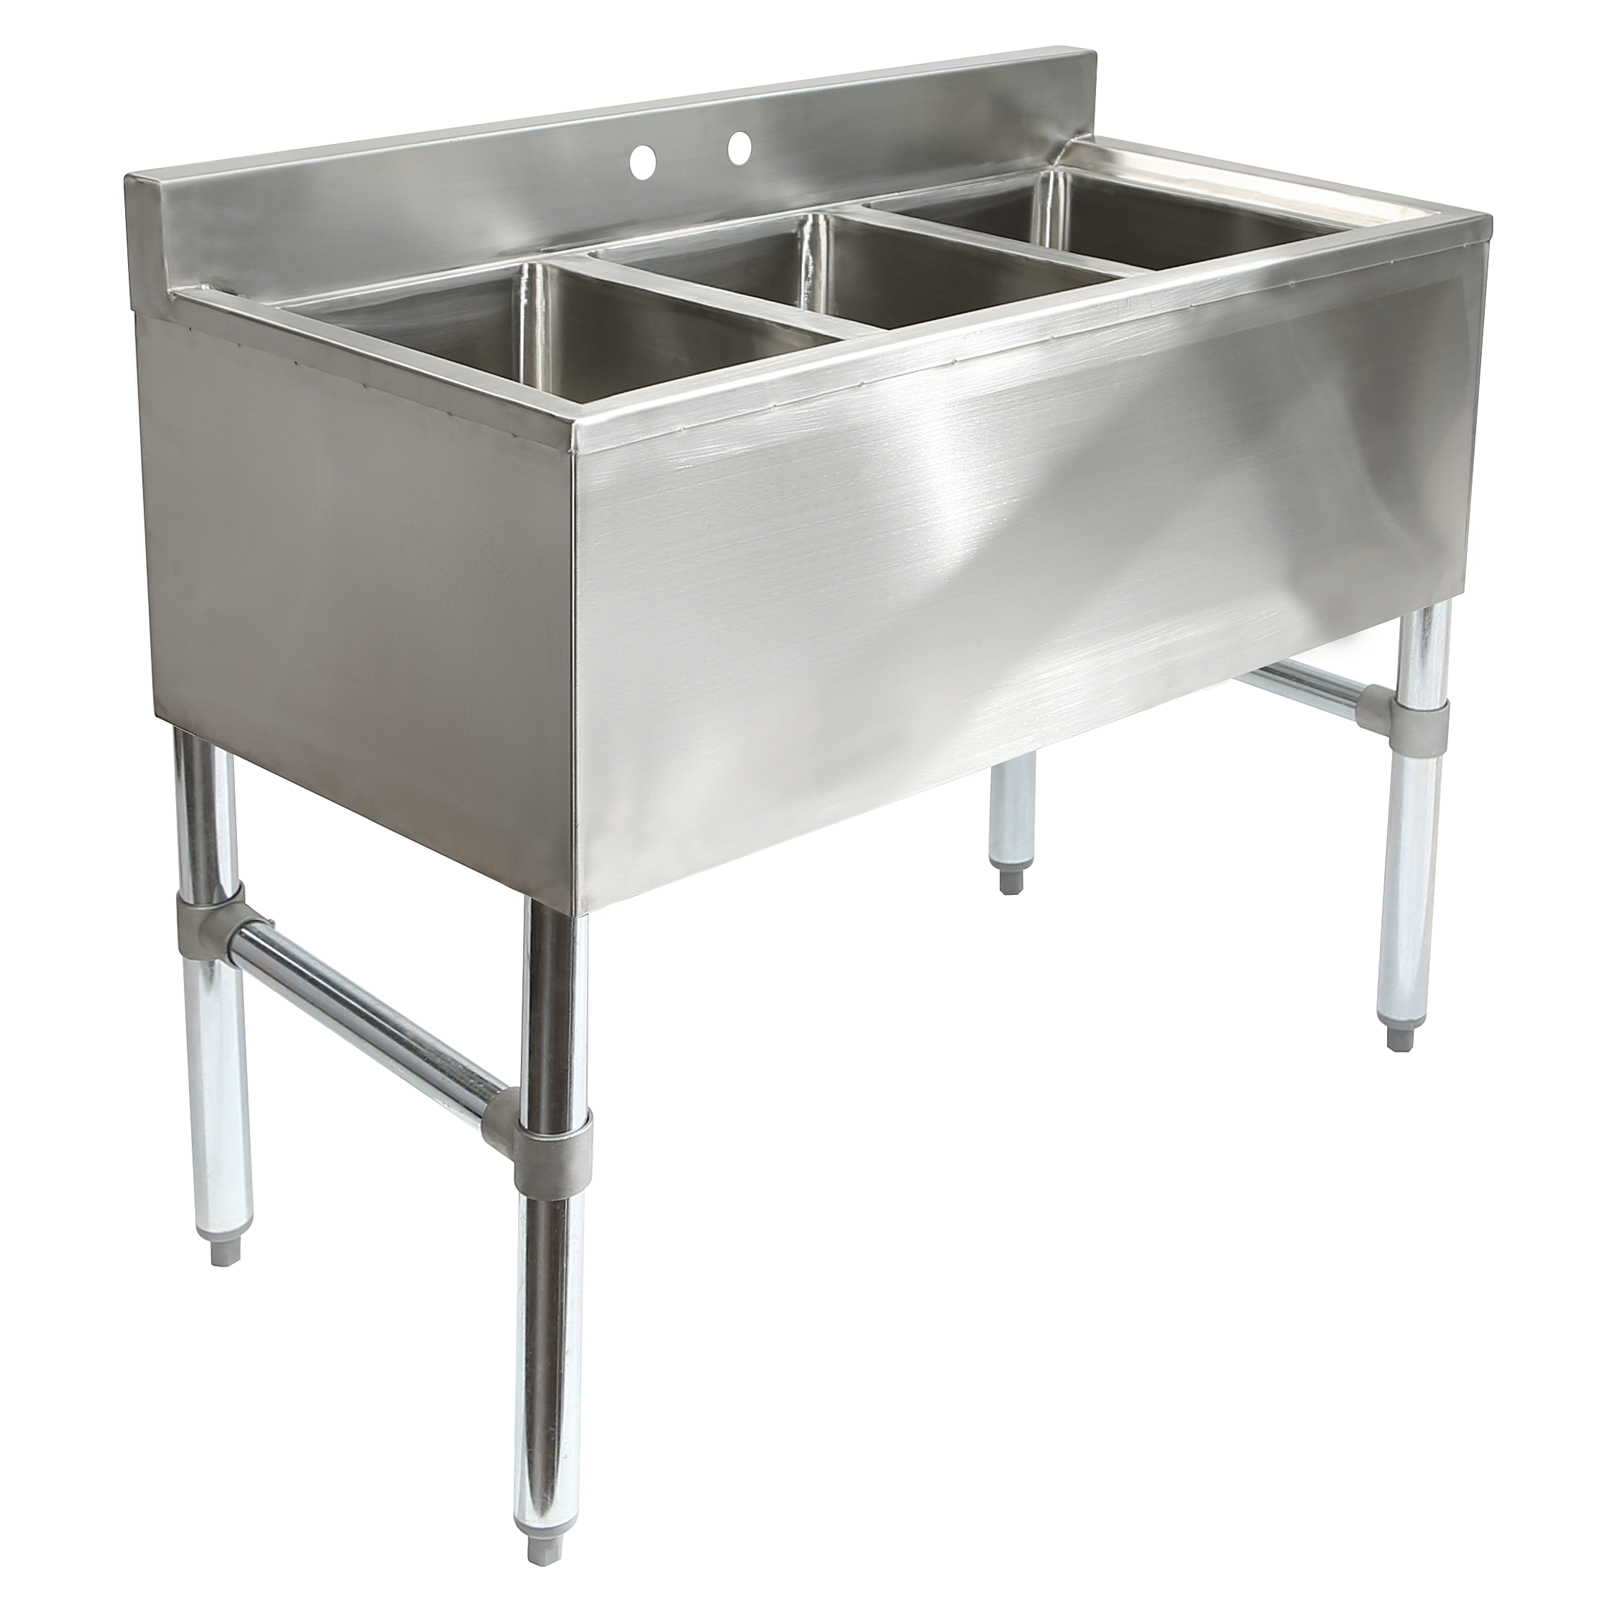 Charmant Gridmann 3 Compartment NSF Stainless Steel Commercial Bar Sink   Walmart.com